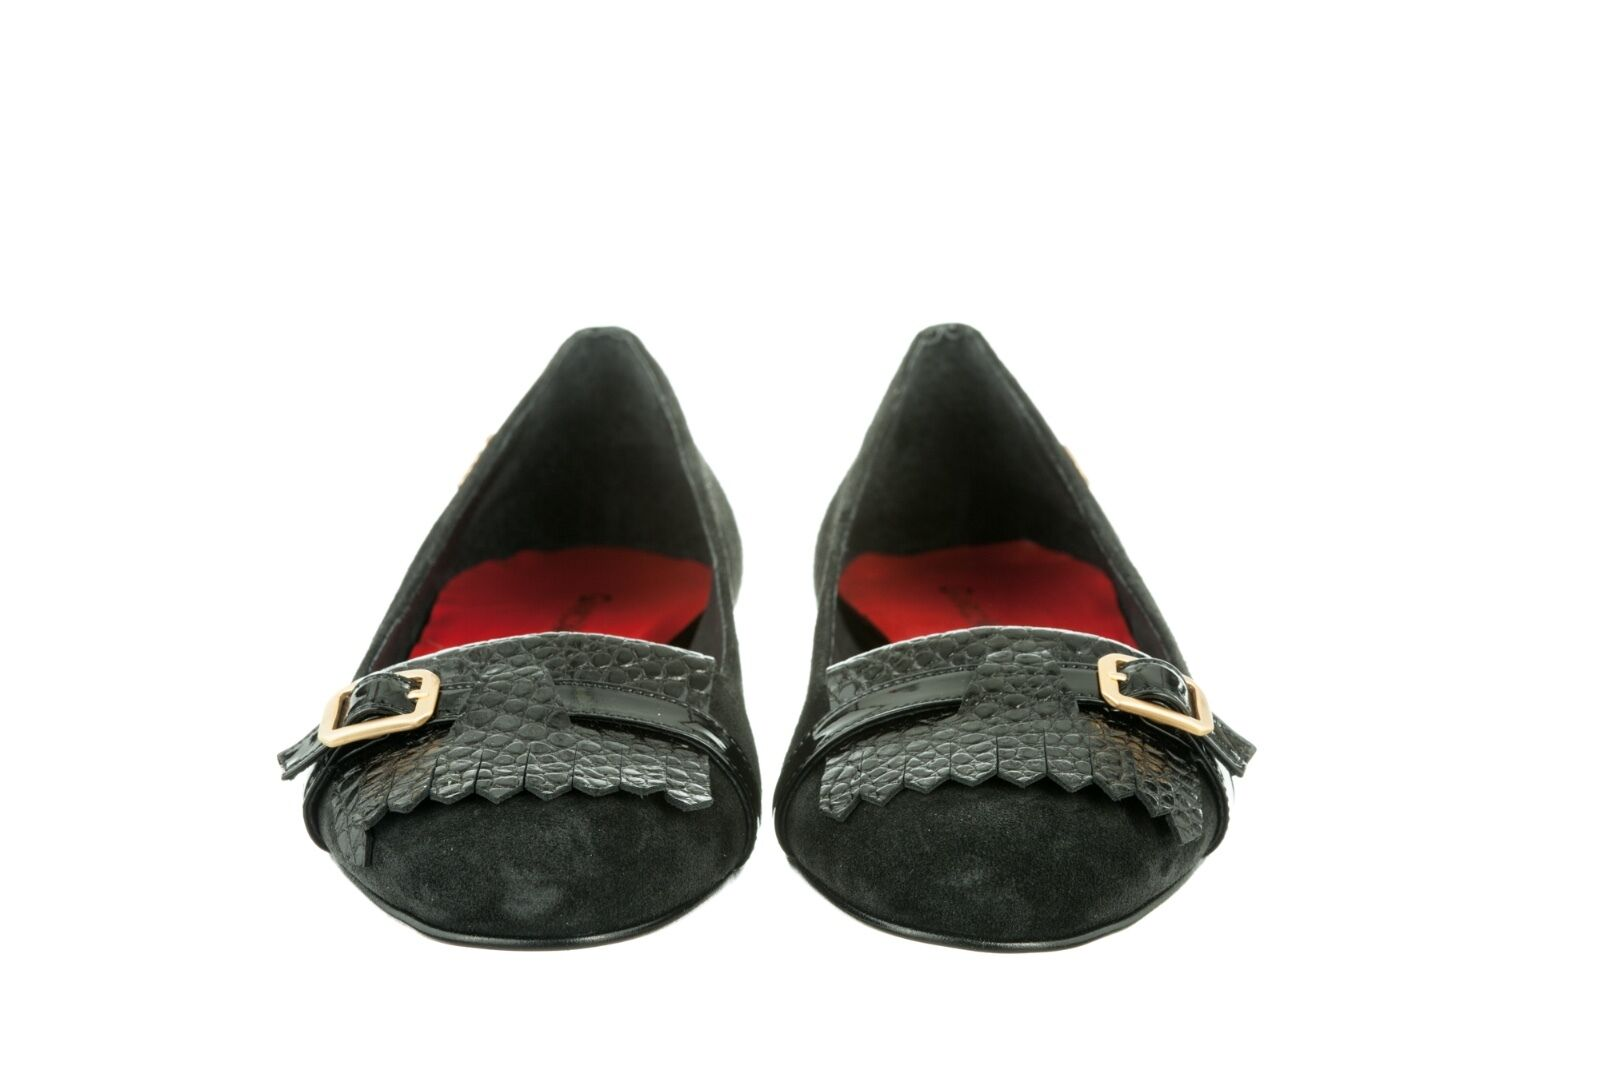 MORI MADE LEATHER ITALY FLATS SCHUHE Schuhe BALLERINA KROCO SUEDE LEATHER MADE BLACK NERO 40 1a6db8